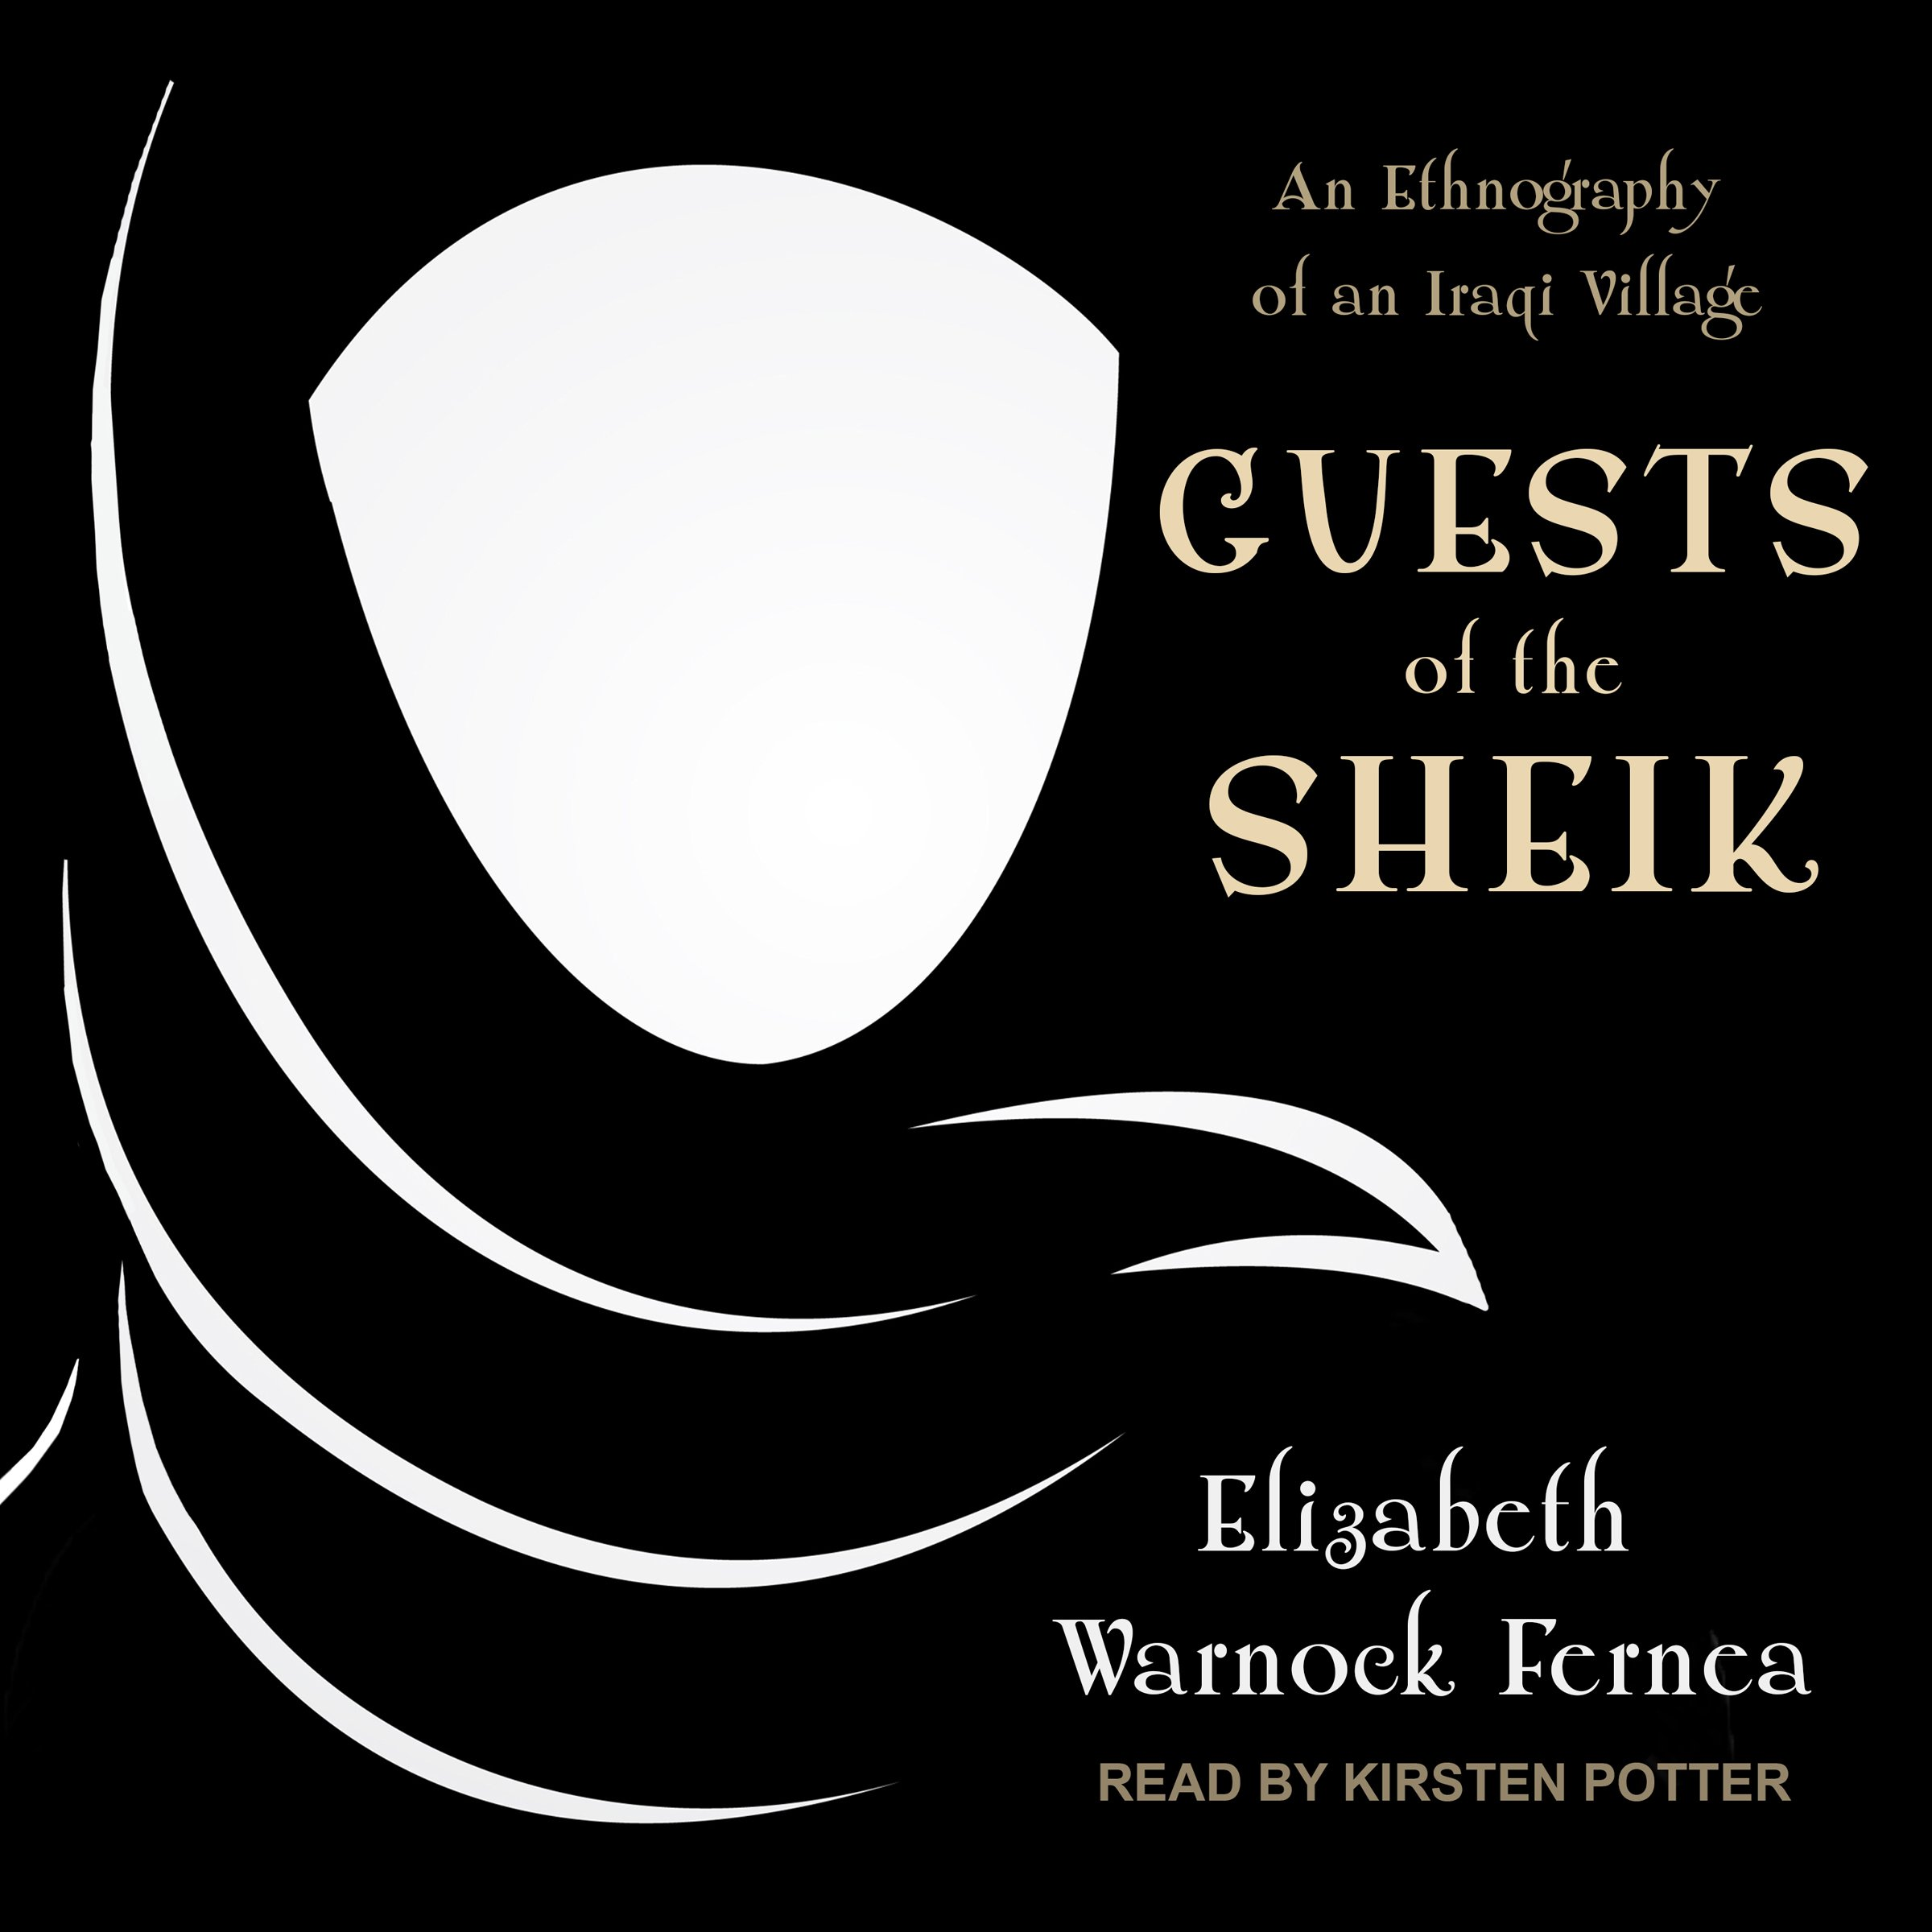 Guests of the Sheik: An Ethnography of an Iraqi Village by Tantor Audio (Image #1)